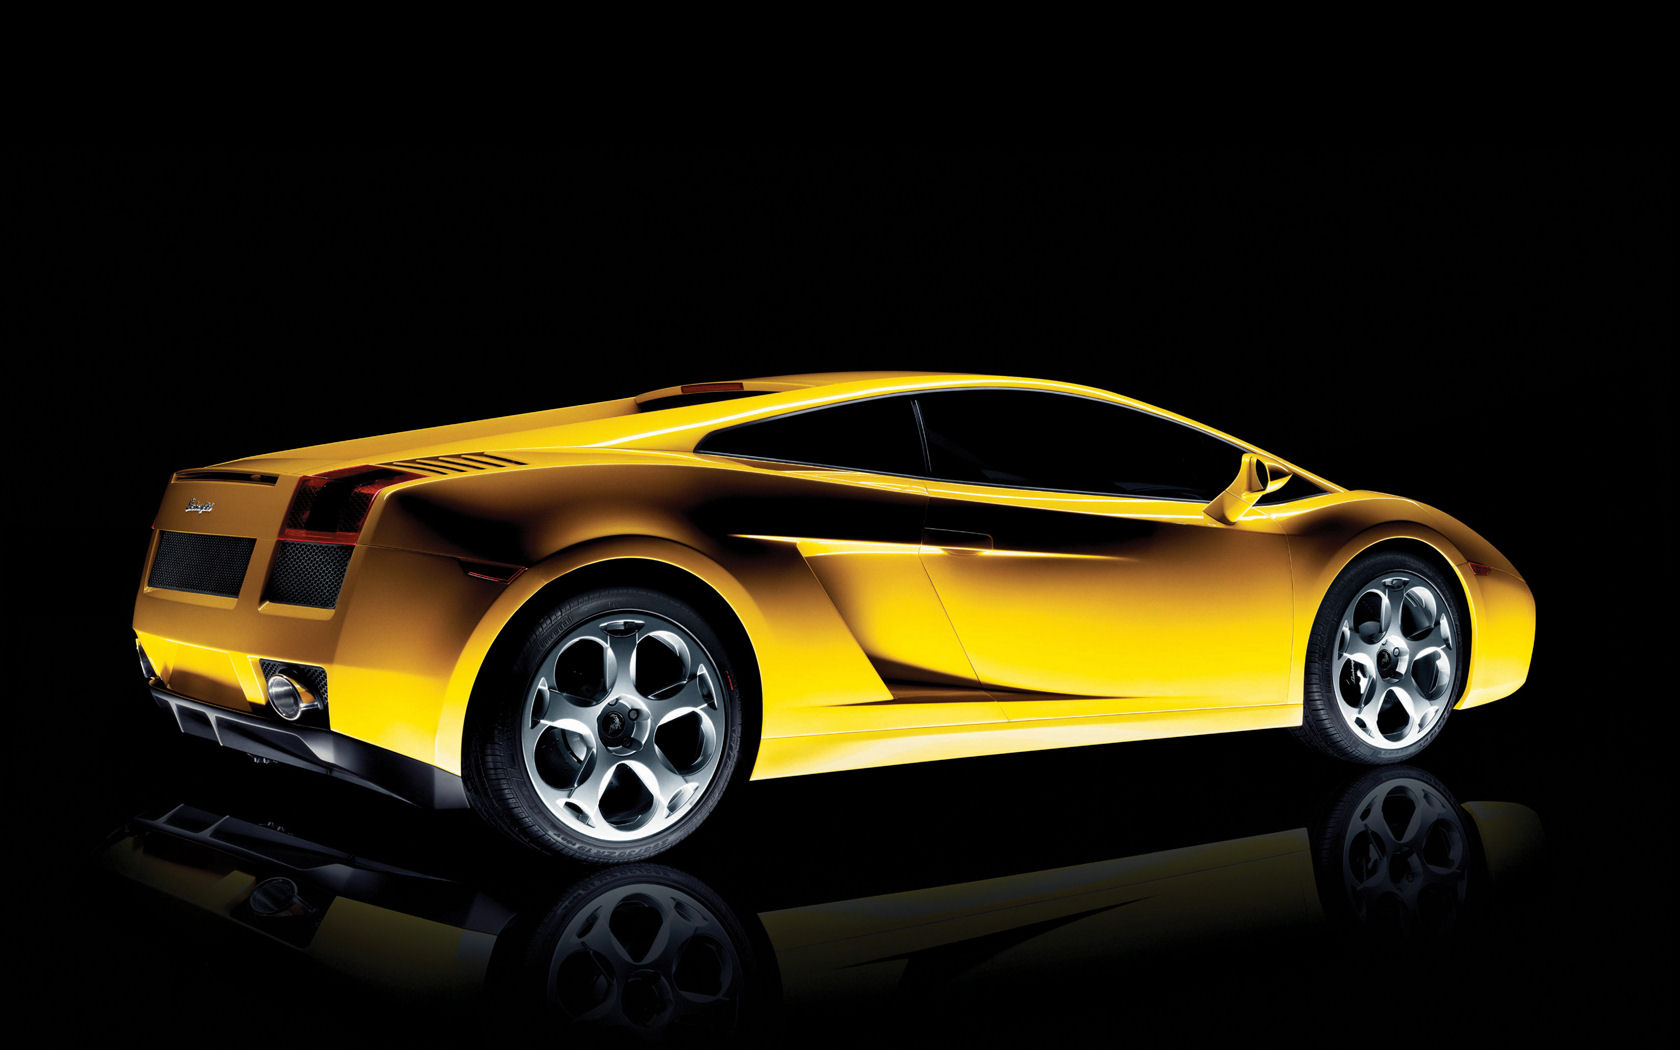 Lamborghini Gallardo Desktop Wallpaper